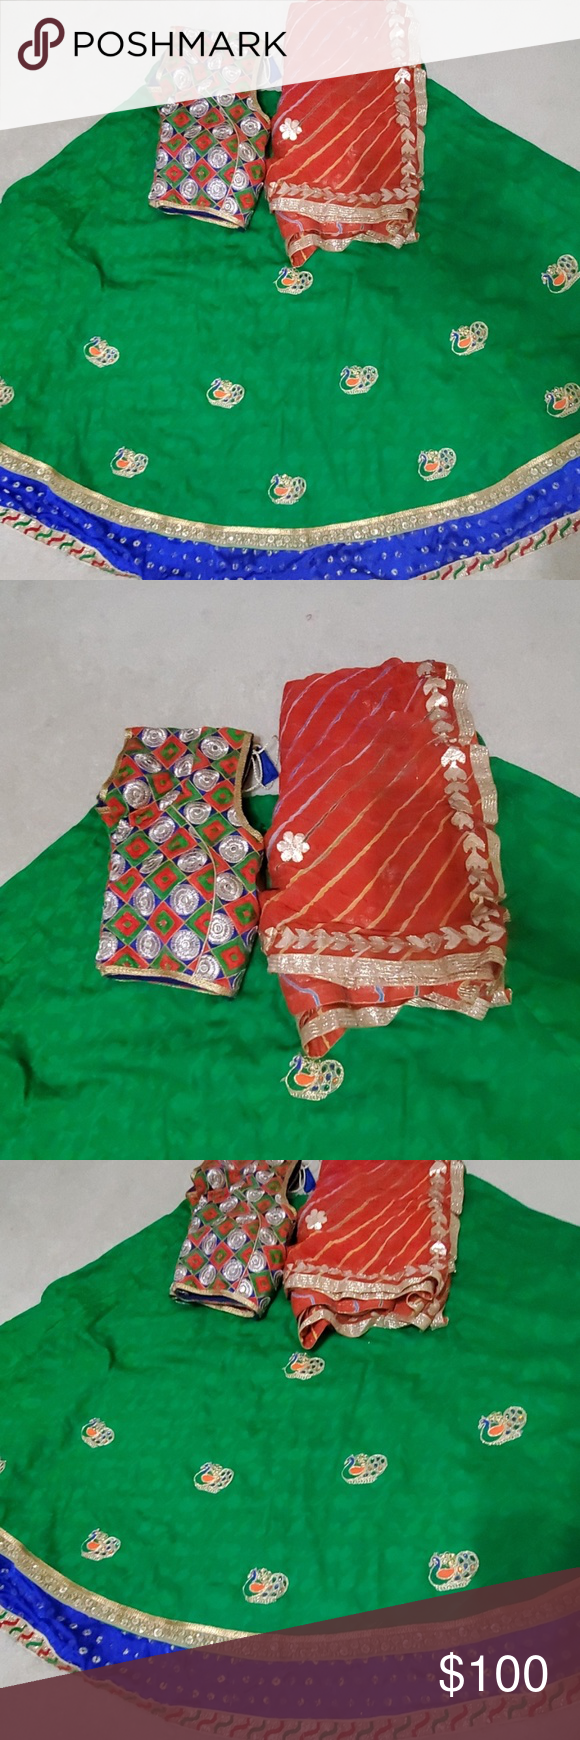 Chaniya choli Like new only wear once Other #chaniyacholi